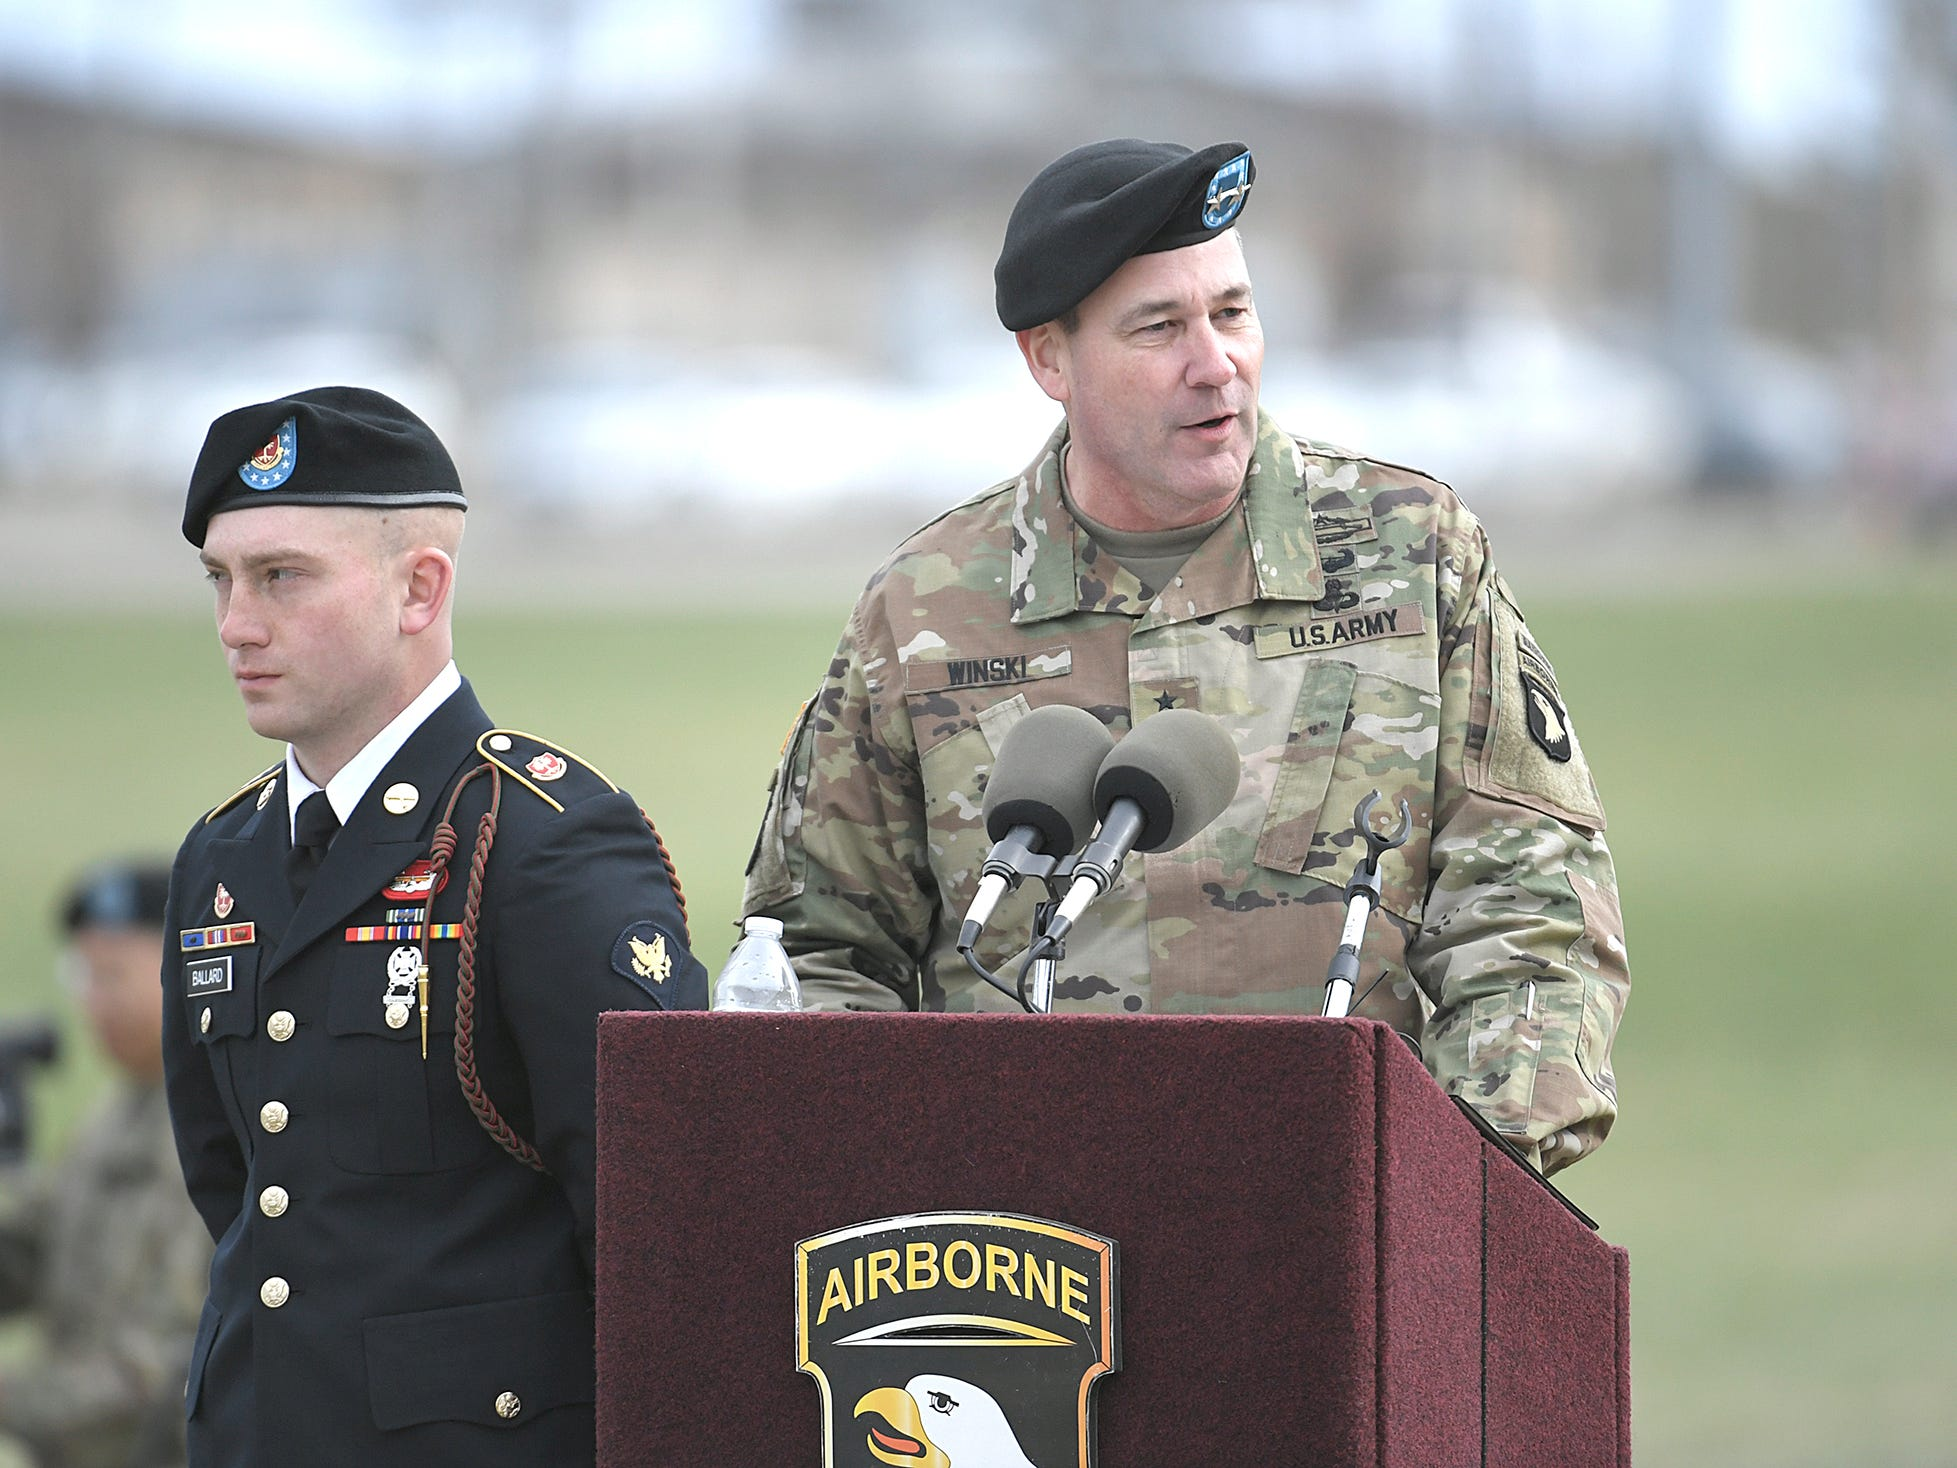 Maj. Gen. Brian Winski speaks during a 101st Airborne Division (Air Assault) and Fort Campbell Division Change of Command ceremony in Fort Campbell, KY on Thursday, Feb. 14, 2019.